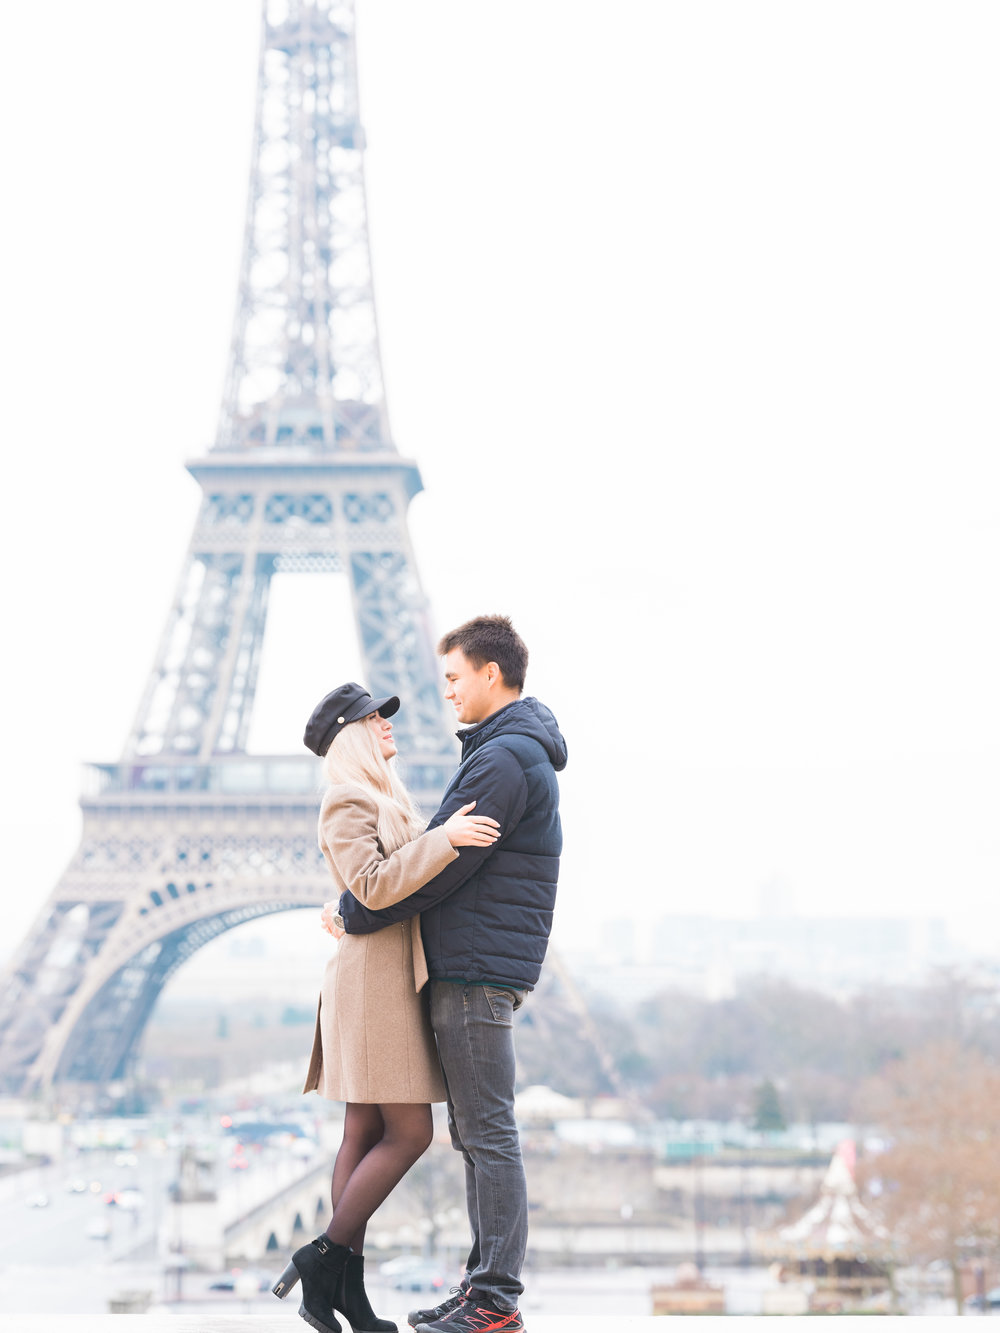 young couple in love at the eiffel tower in paris france